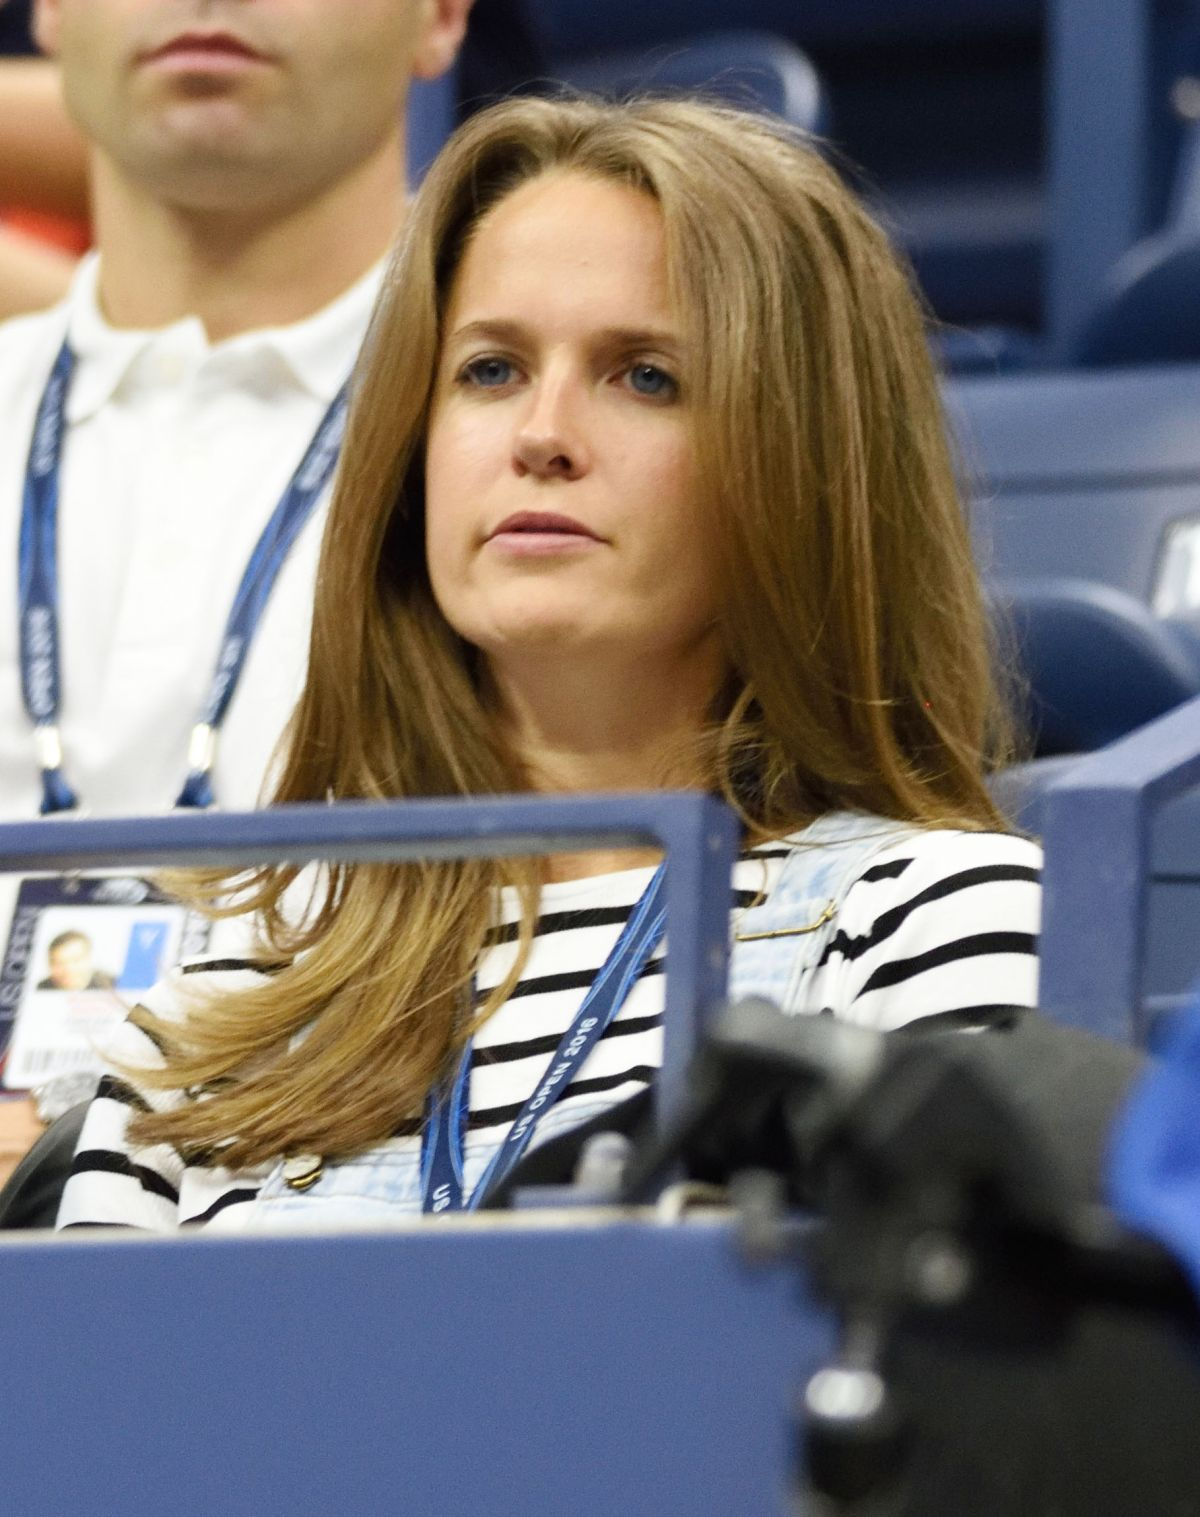 KIM SEARS at 2016 US Open in New York, 09/01/2016